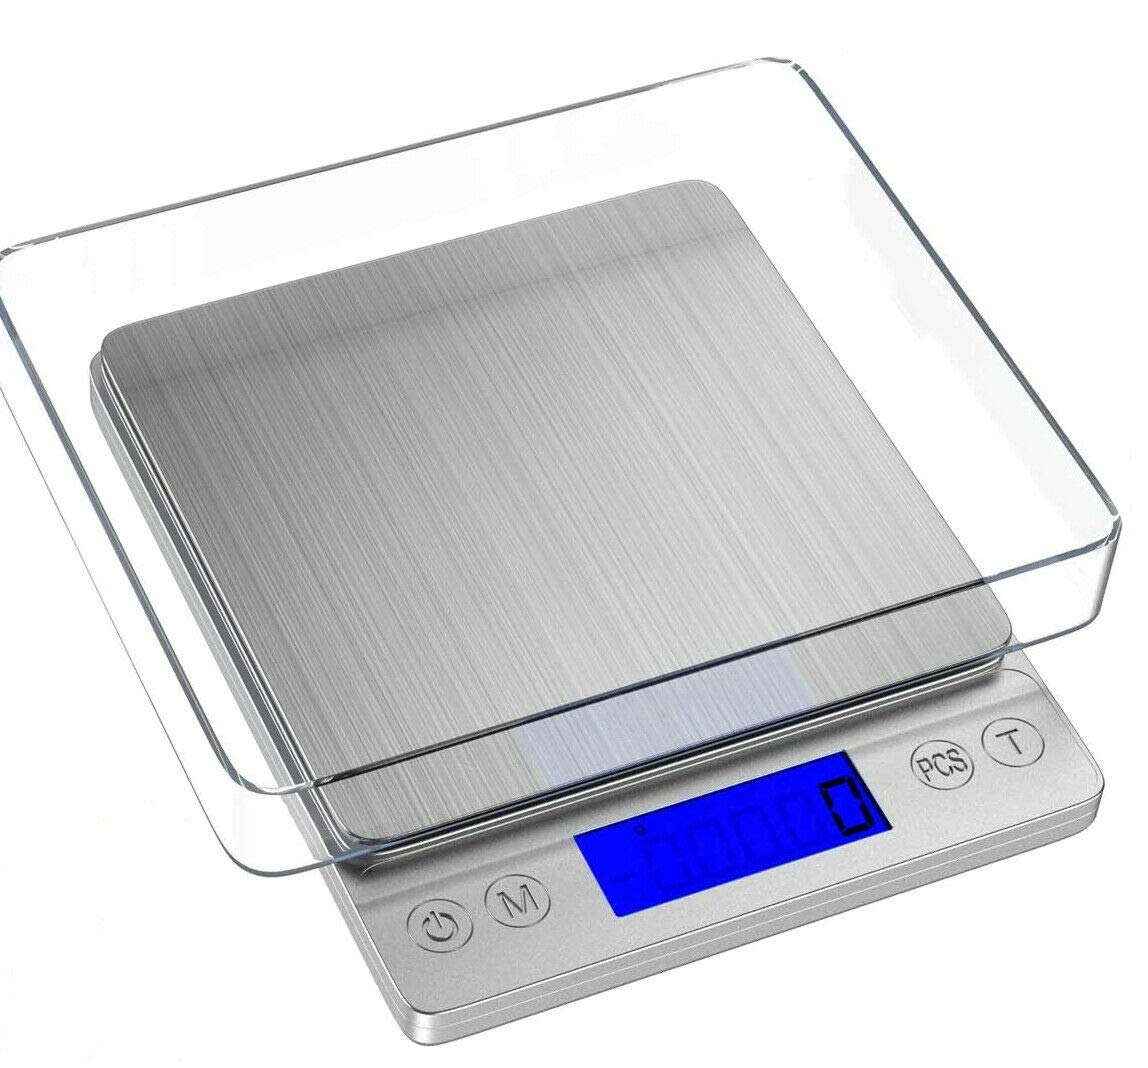 Food Digital Kitchen Scale, Tooackl Multifunction Scale Measures in Grams and oz for Cooking Baking, 0.01 oz/4.4 lbs Precise Graduation, Coffee Scales Grams Nutritional Calculator.